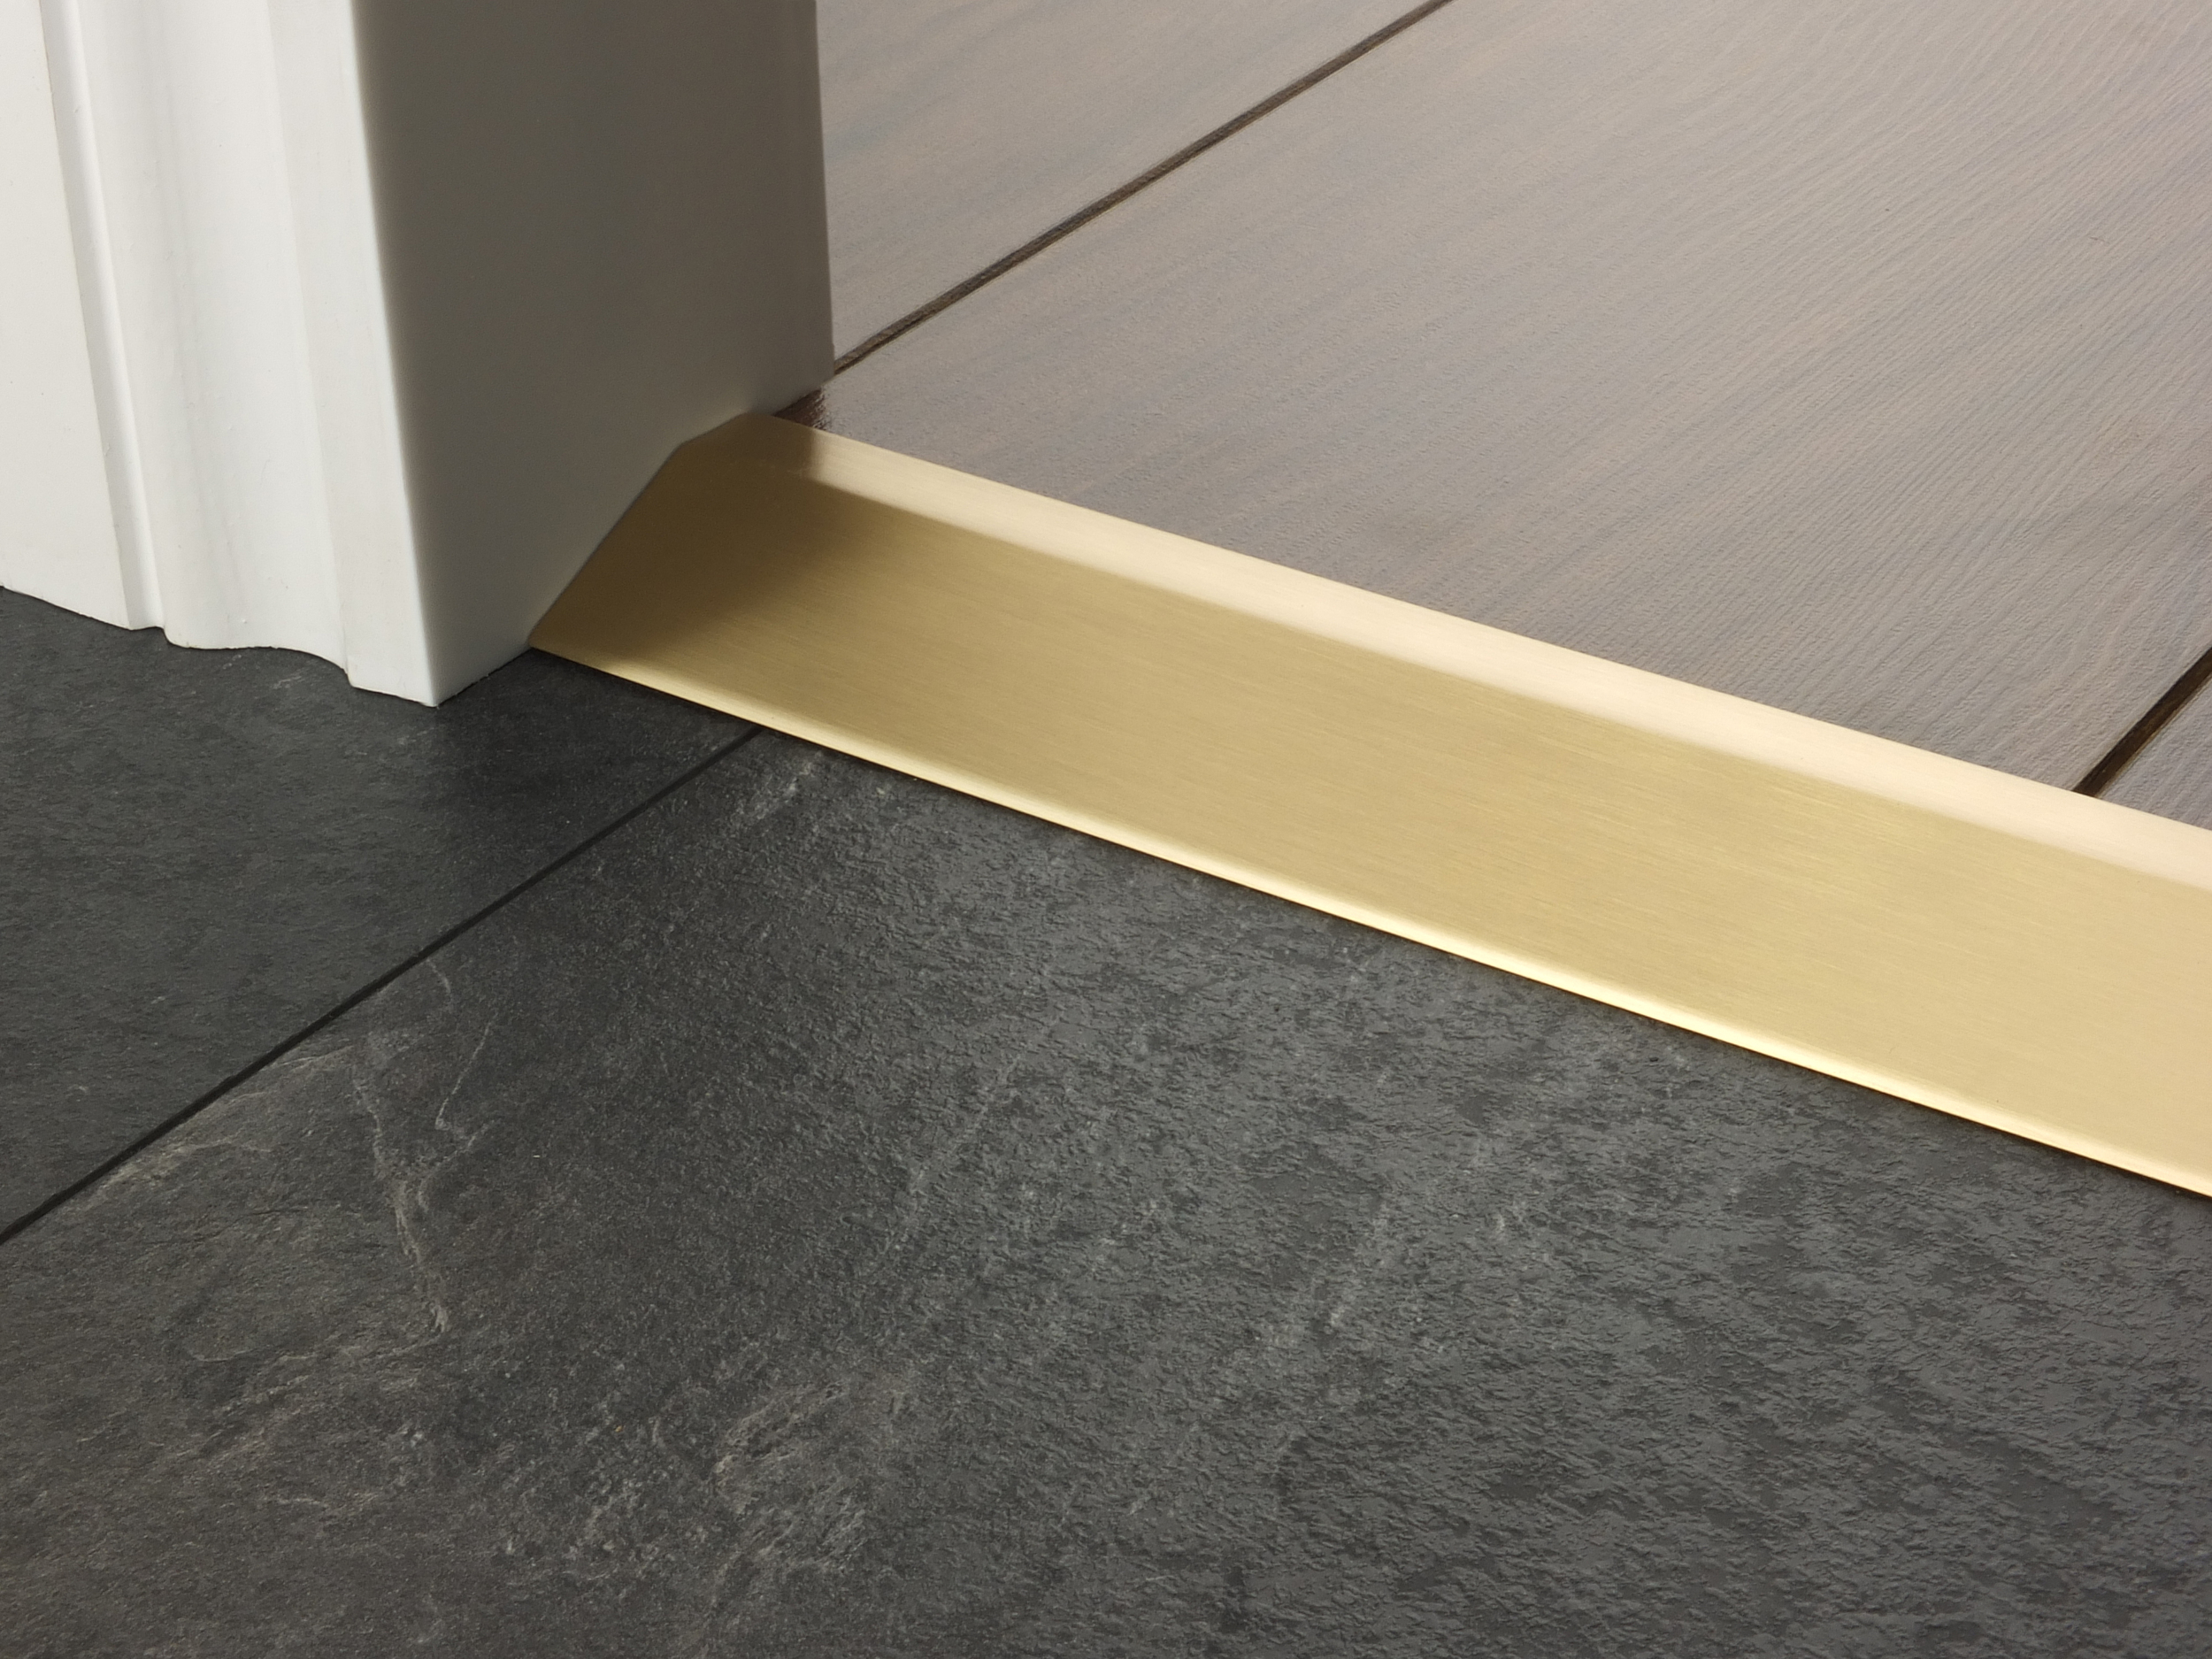 door_bar_ramp16_satin_brass.jpg